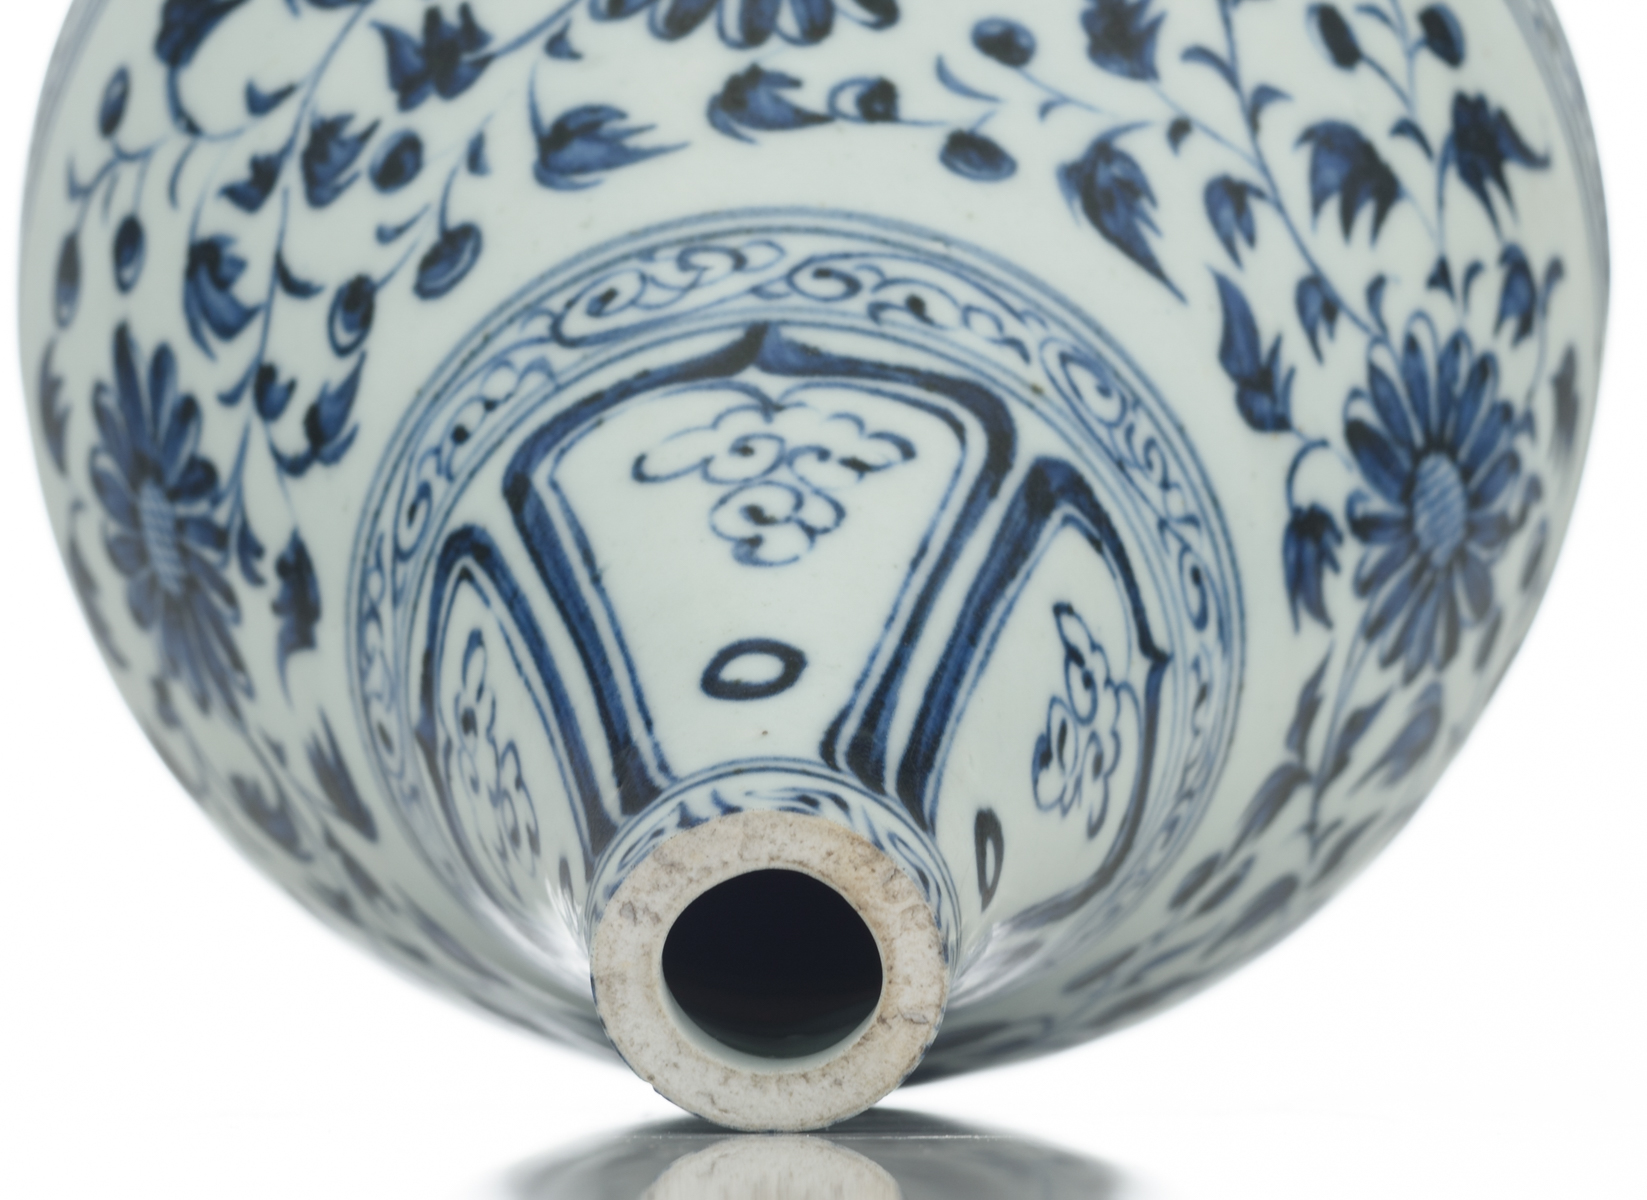 A Chinese blue and white floral decorated Ming type bottle vase, 17thC, H 21,5 cm - Image 5 of 6